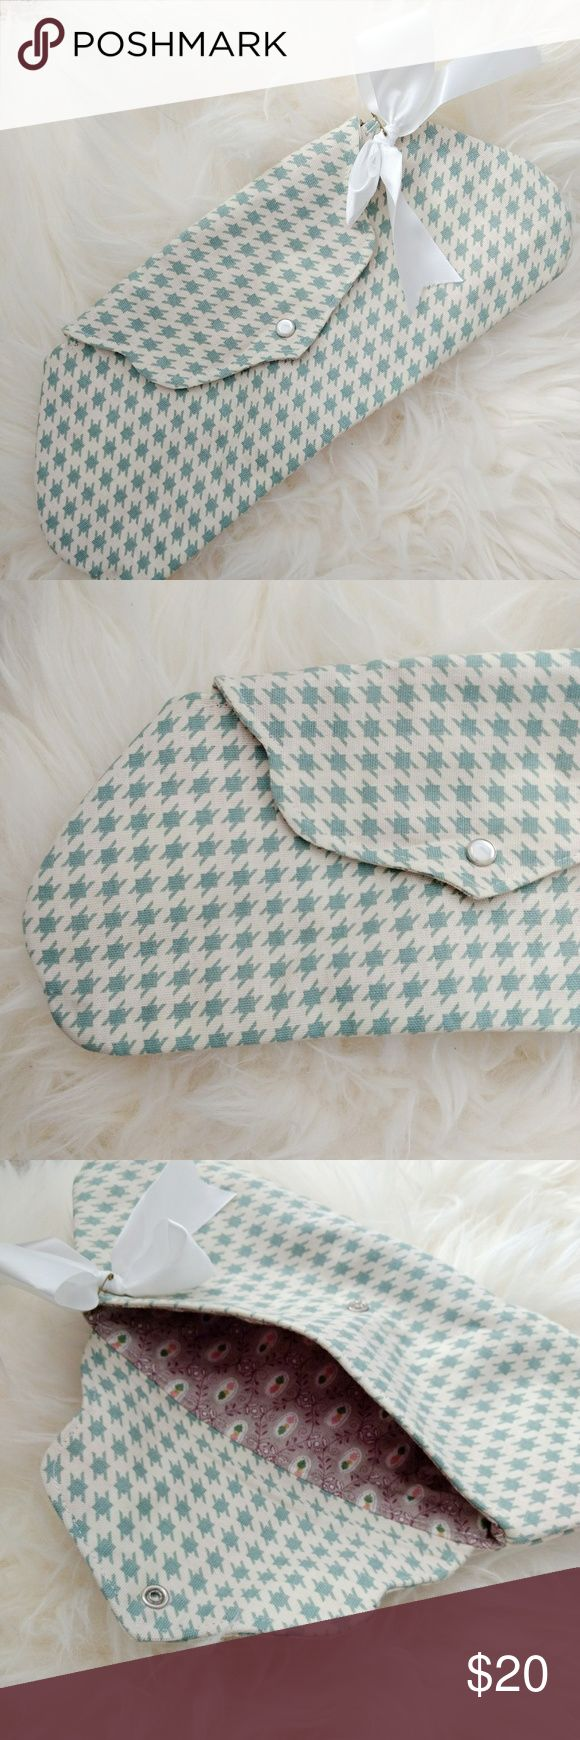 houndstooth clutch blue and white houndstooth fabric clutch. handmade item purchased at a craft fair. fully lined with snap button closure. Bags Clutches & Wristlets